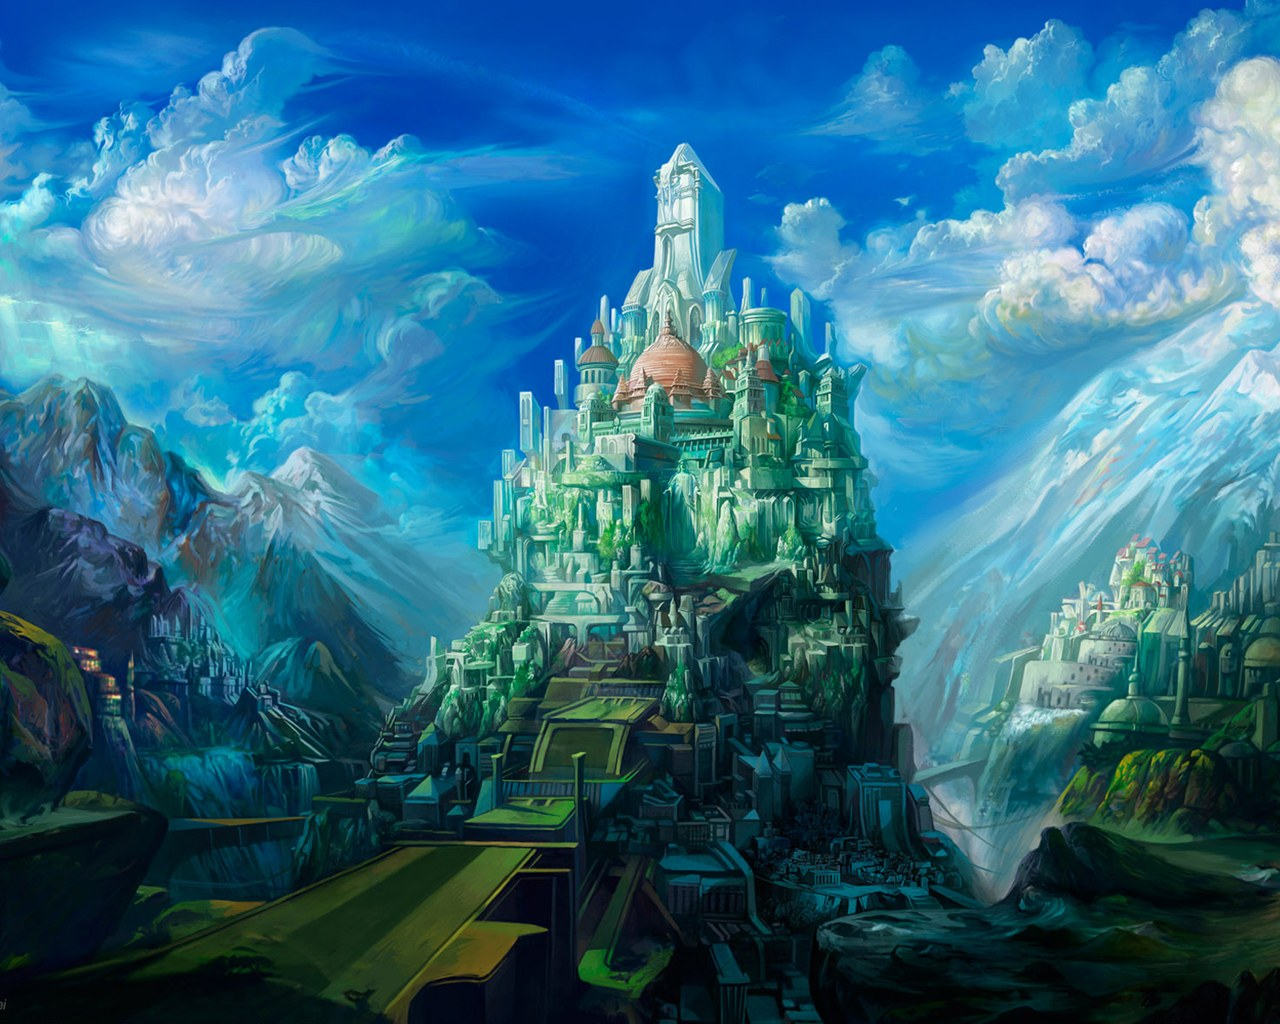 http://www.wallcoo.com/cartoon/Fantasy_Scenery_CG_artwork_1920x1200/wallpapers/1280x1024/fantasy_art_scenery_wallpaper_chen_wei_12.jpg